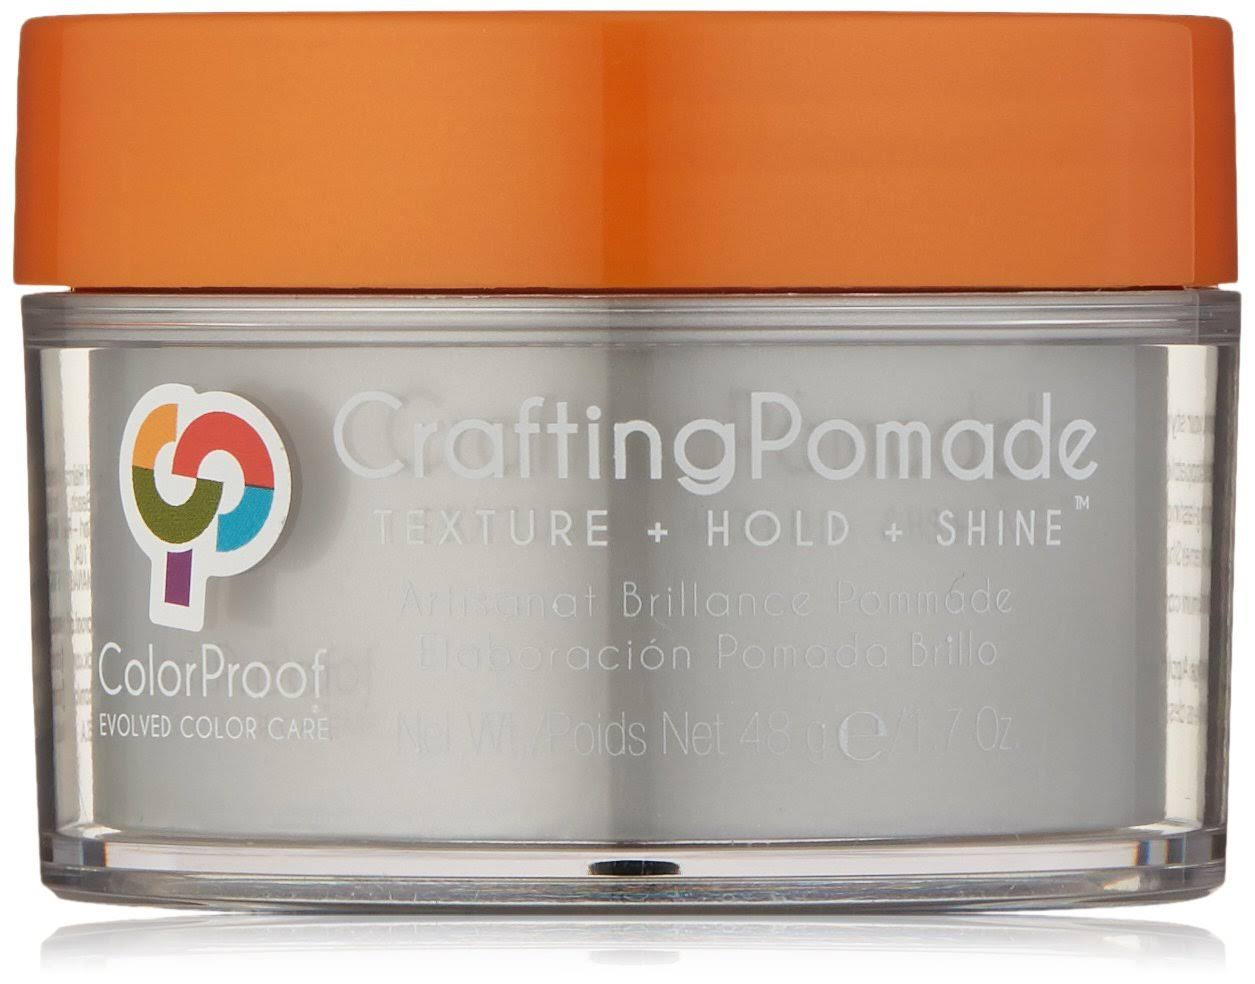 Colorproof Evolved Color Care Crafting Pomade - 1.7oz